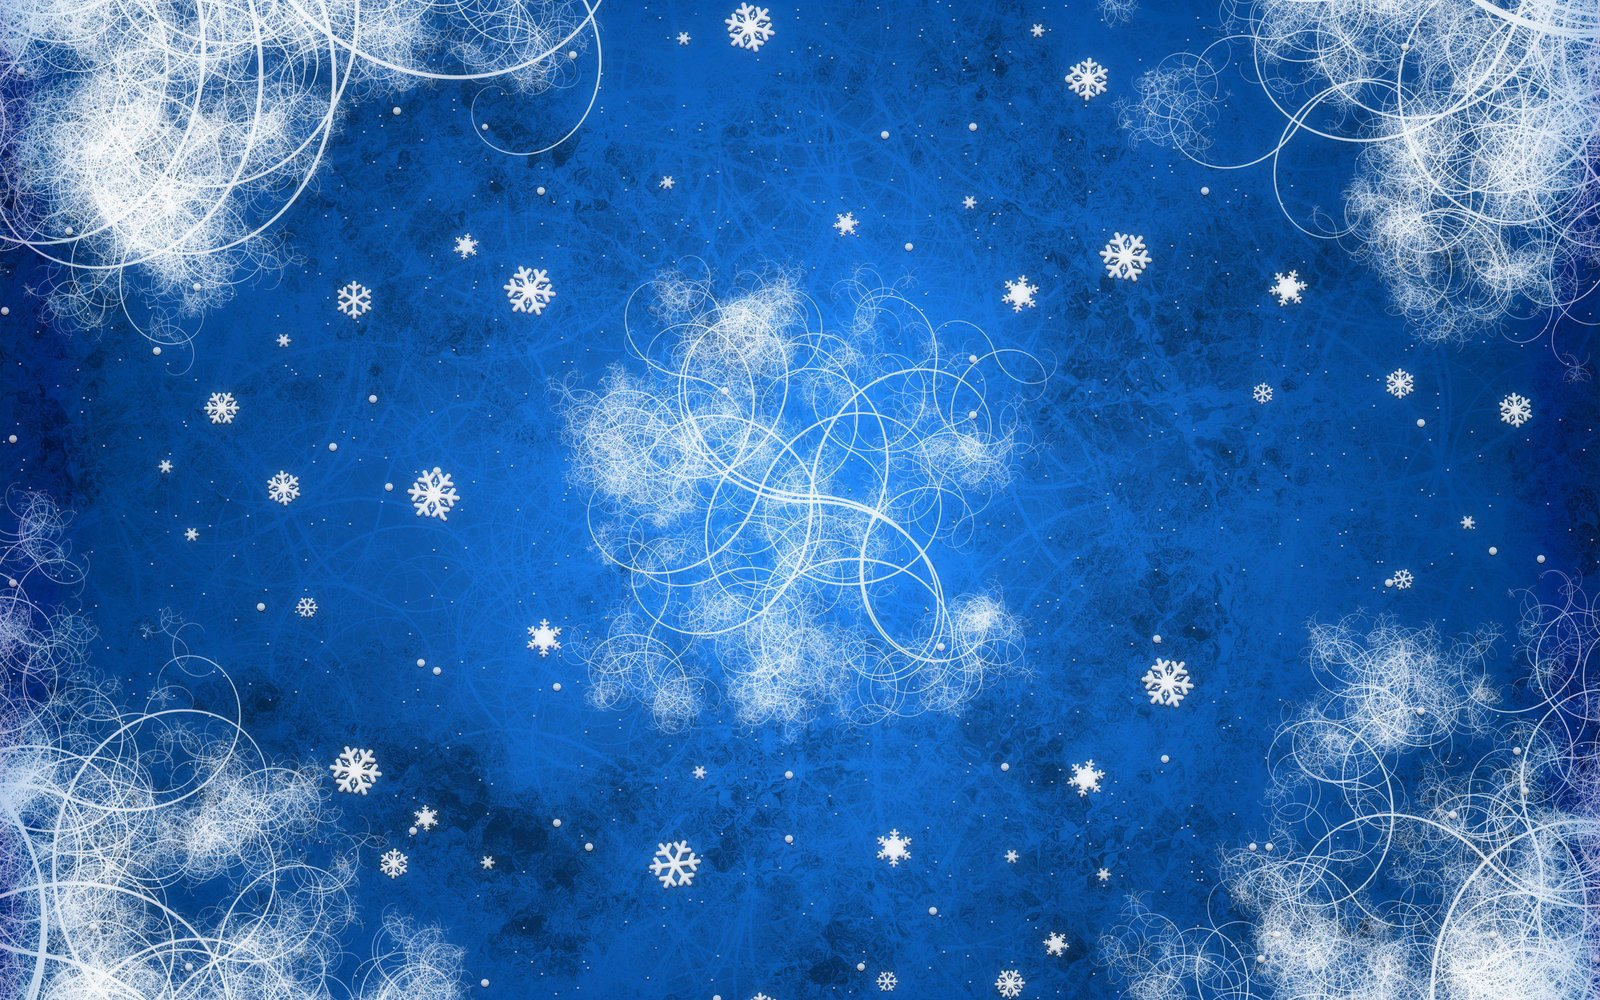 Free Snow Wallpaper Stock Photo Freeimagescom